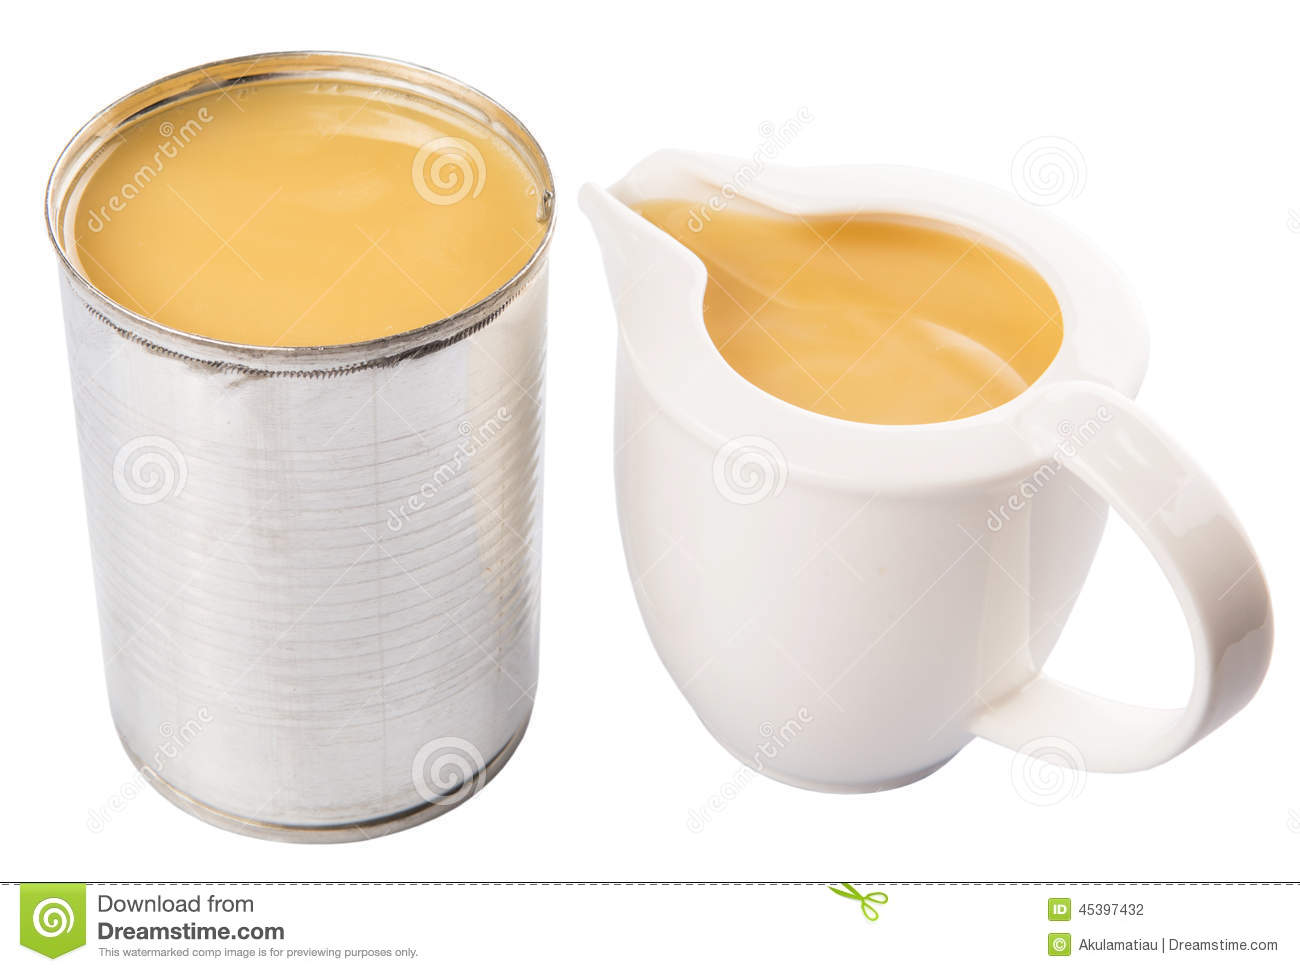 Lait condensé en Tin Can And Milk Container I